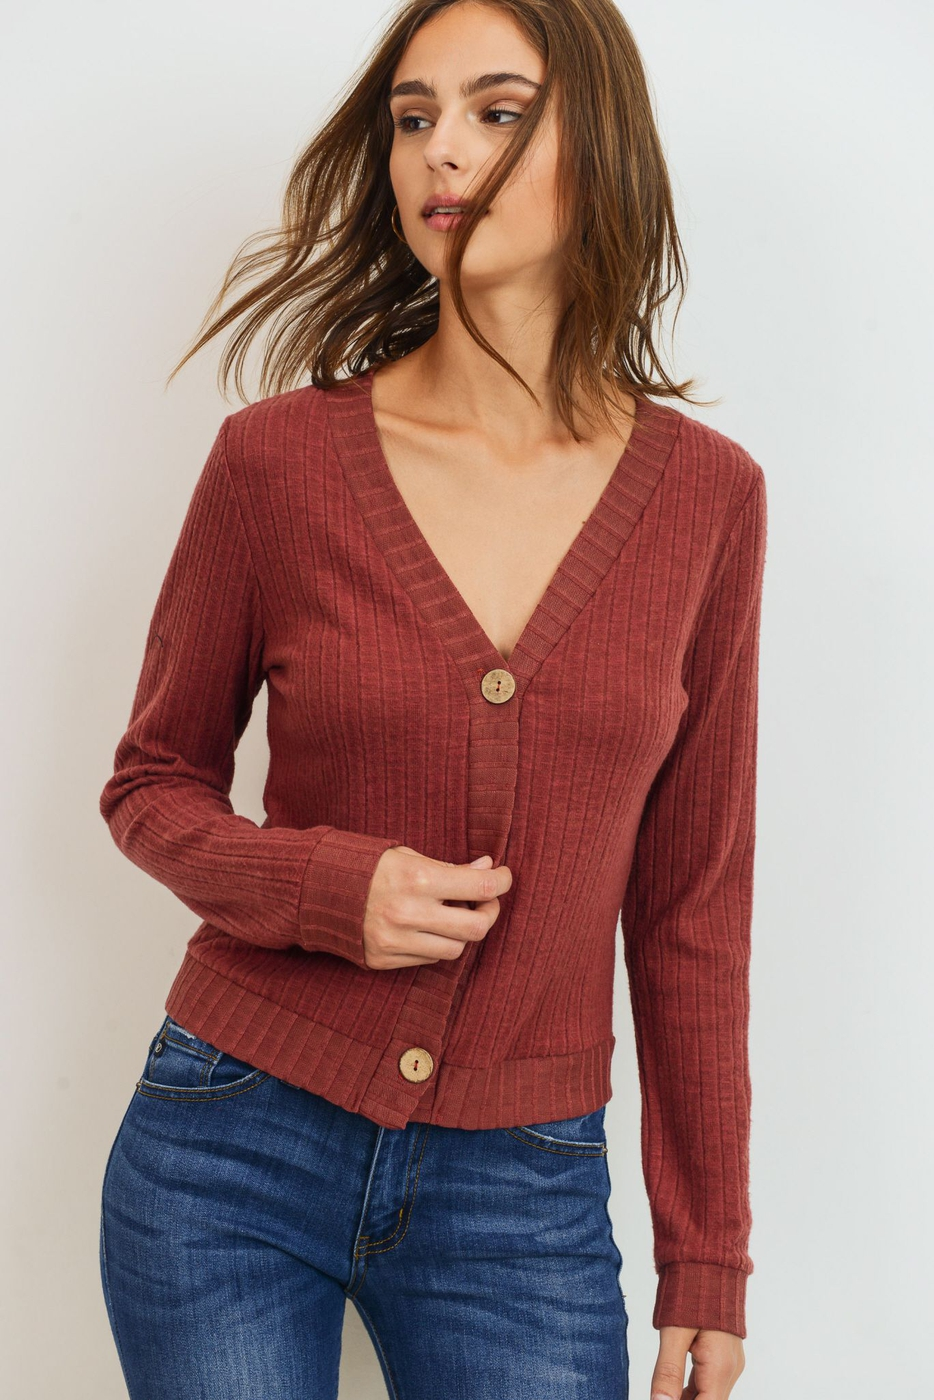 Brushed Ribbed Button Down Cardigan - orangeshine.com